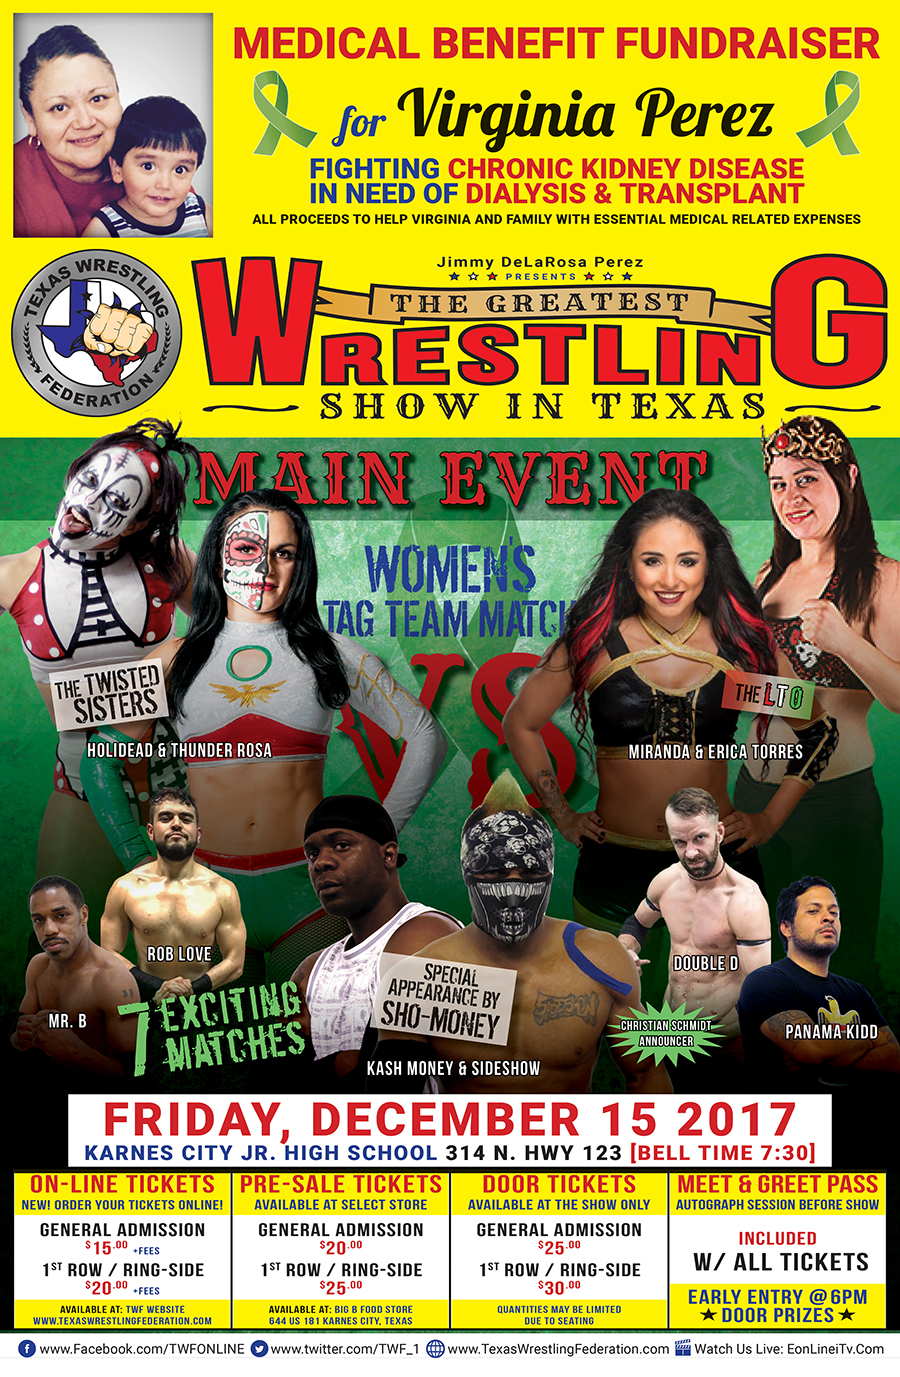 Texas Wrestling Federation - Karnes City - December 15th - Poster Image